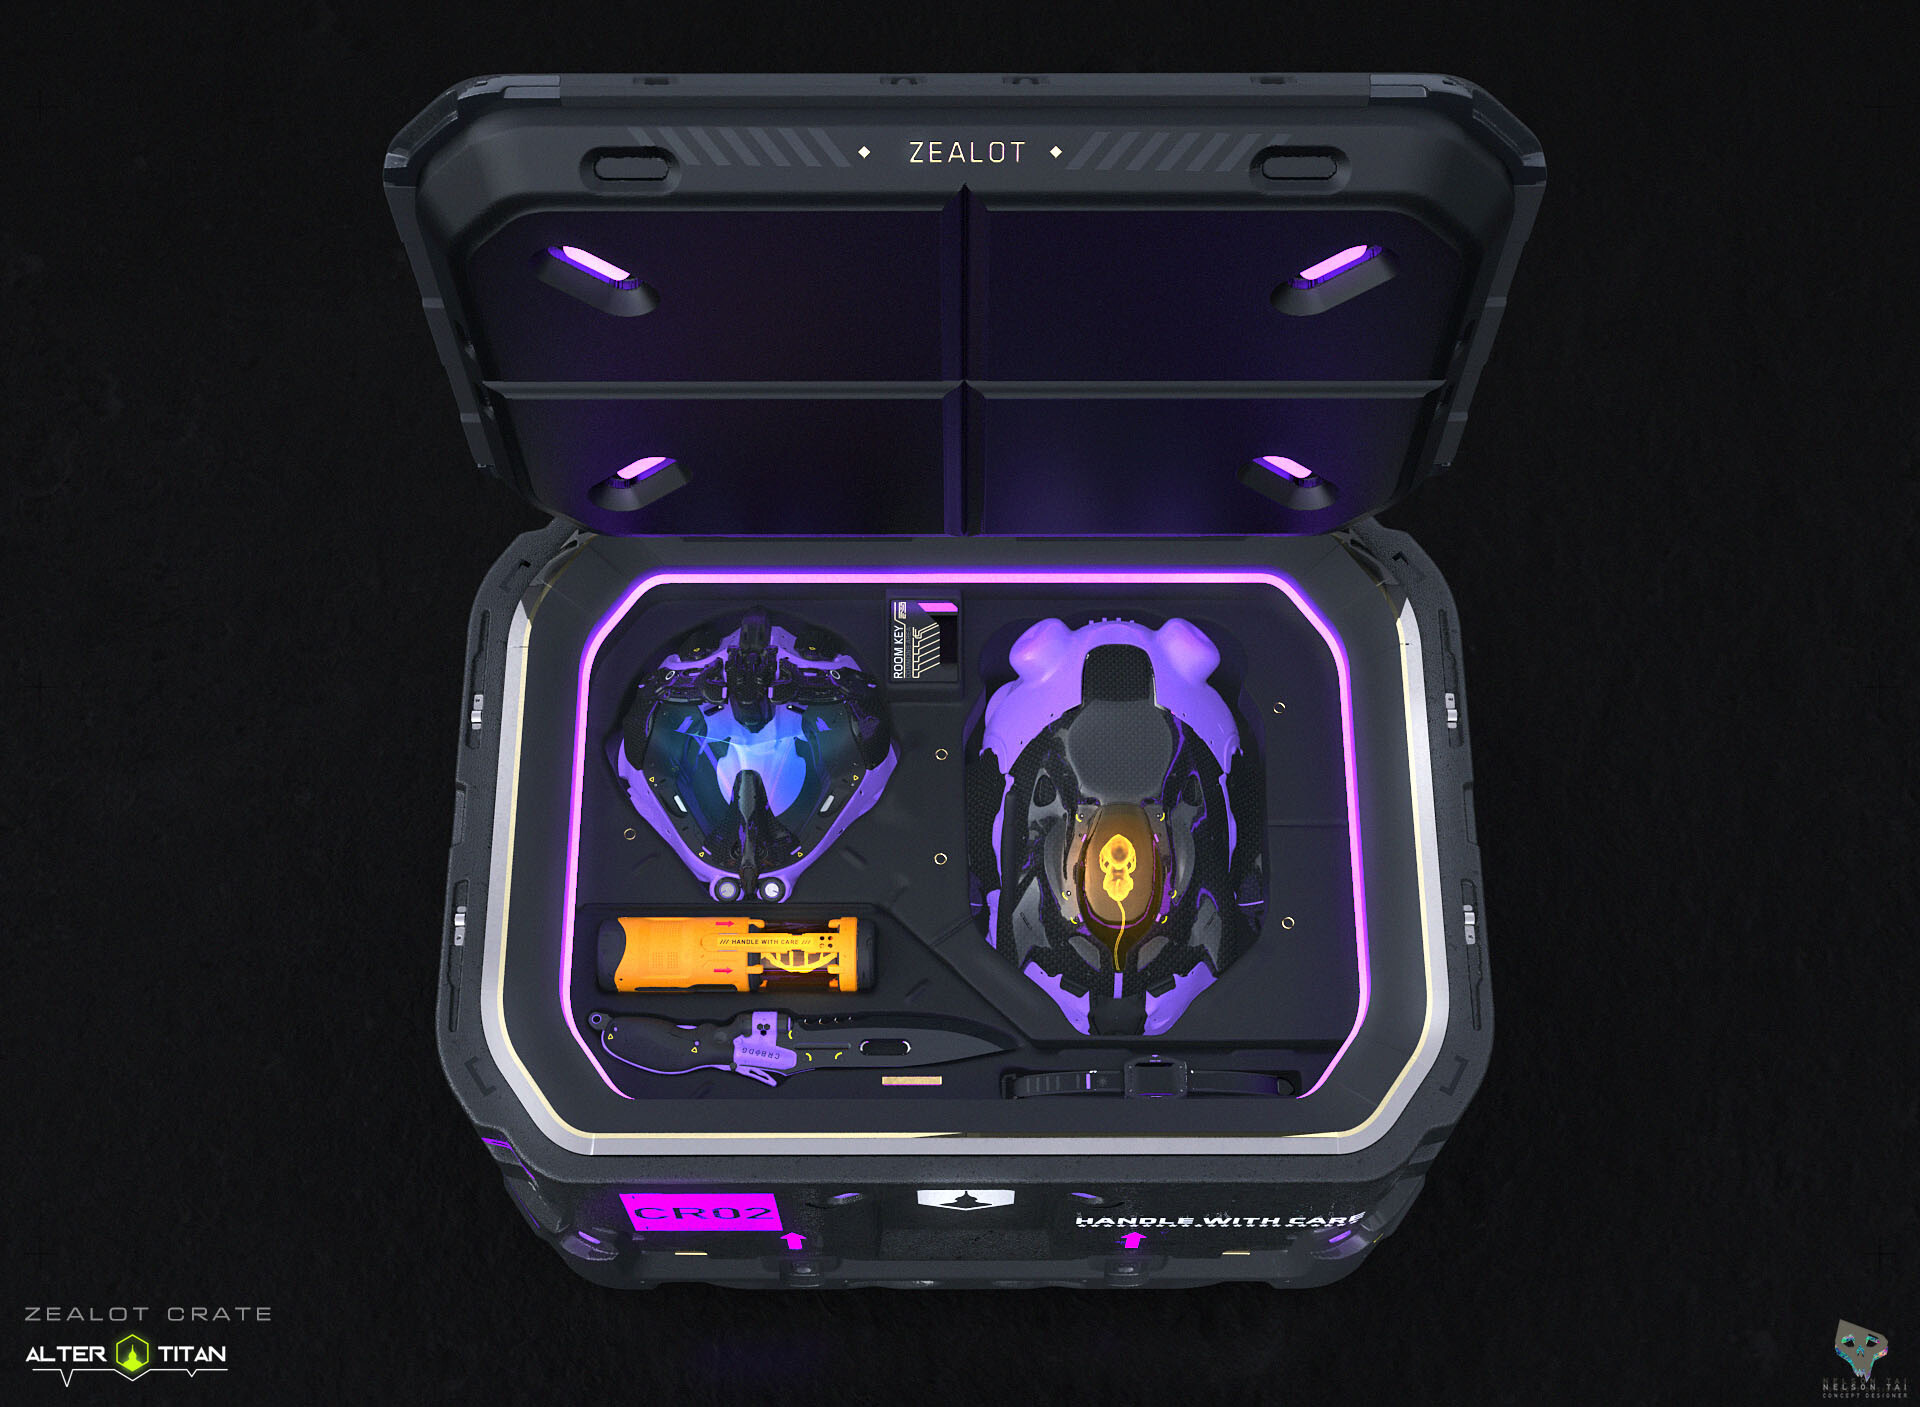 The Zealot Crate - Comes with upgraded items than the Cadet Crate.